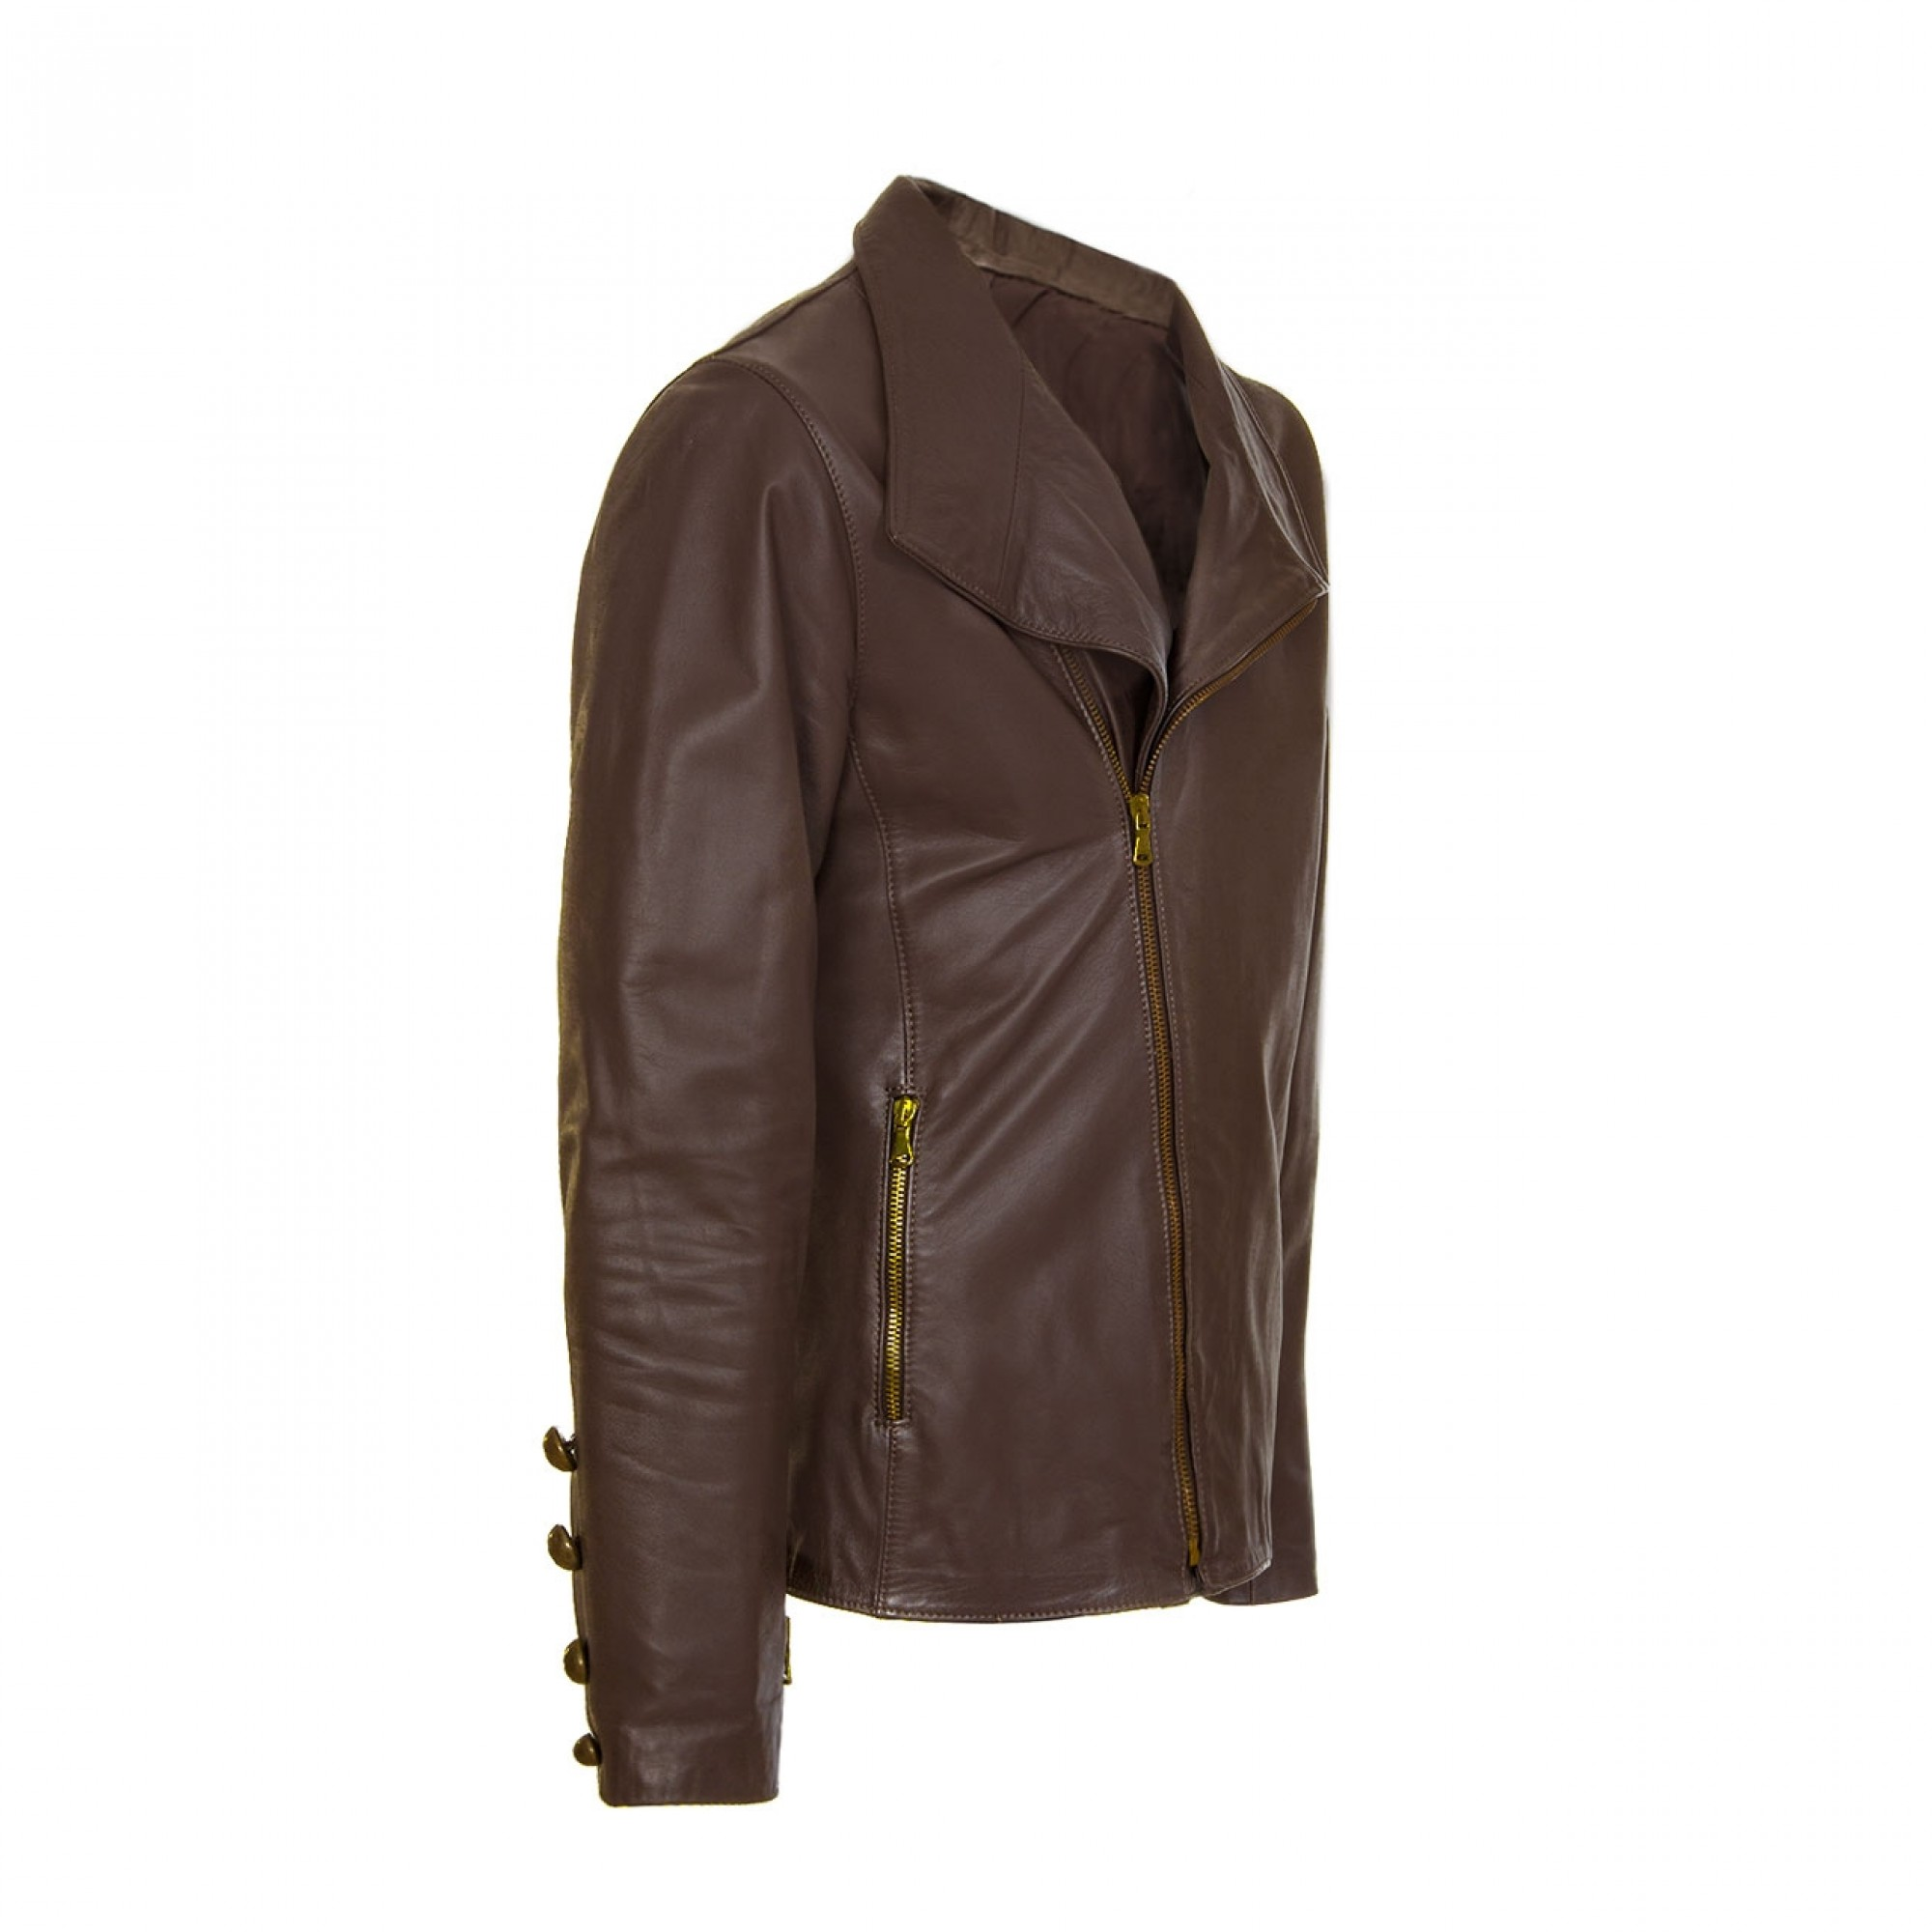 Princeton leather jacket